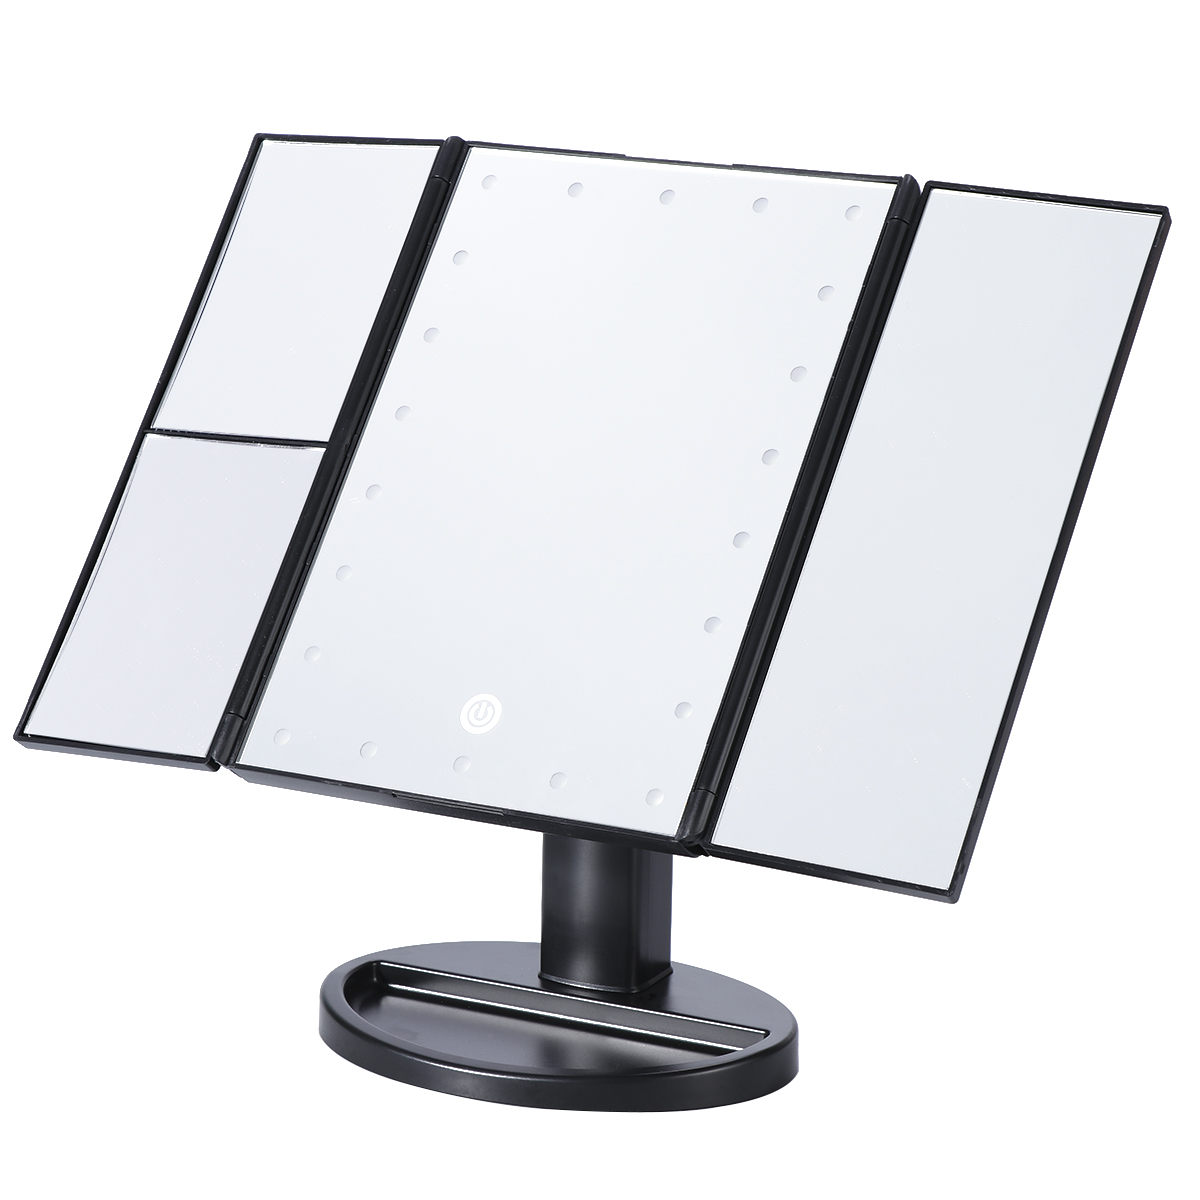 LED Vanity Makeup Mirror Trifold 21LEDs Lighted with Touch Screen 180Adjustable Stand Magnification USB Countertop Cosmetic 22 led touch screen makeup mirror 10x magnifier bright lighted cosmetic makeup mirror portable vanity countertop 180 rotating